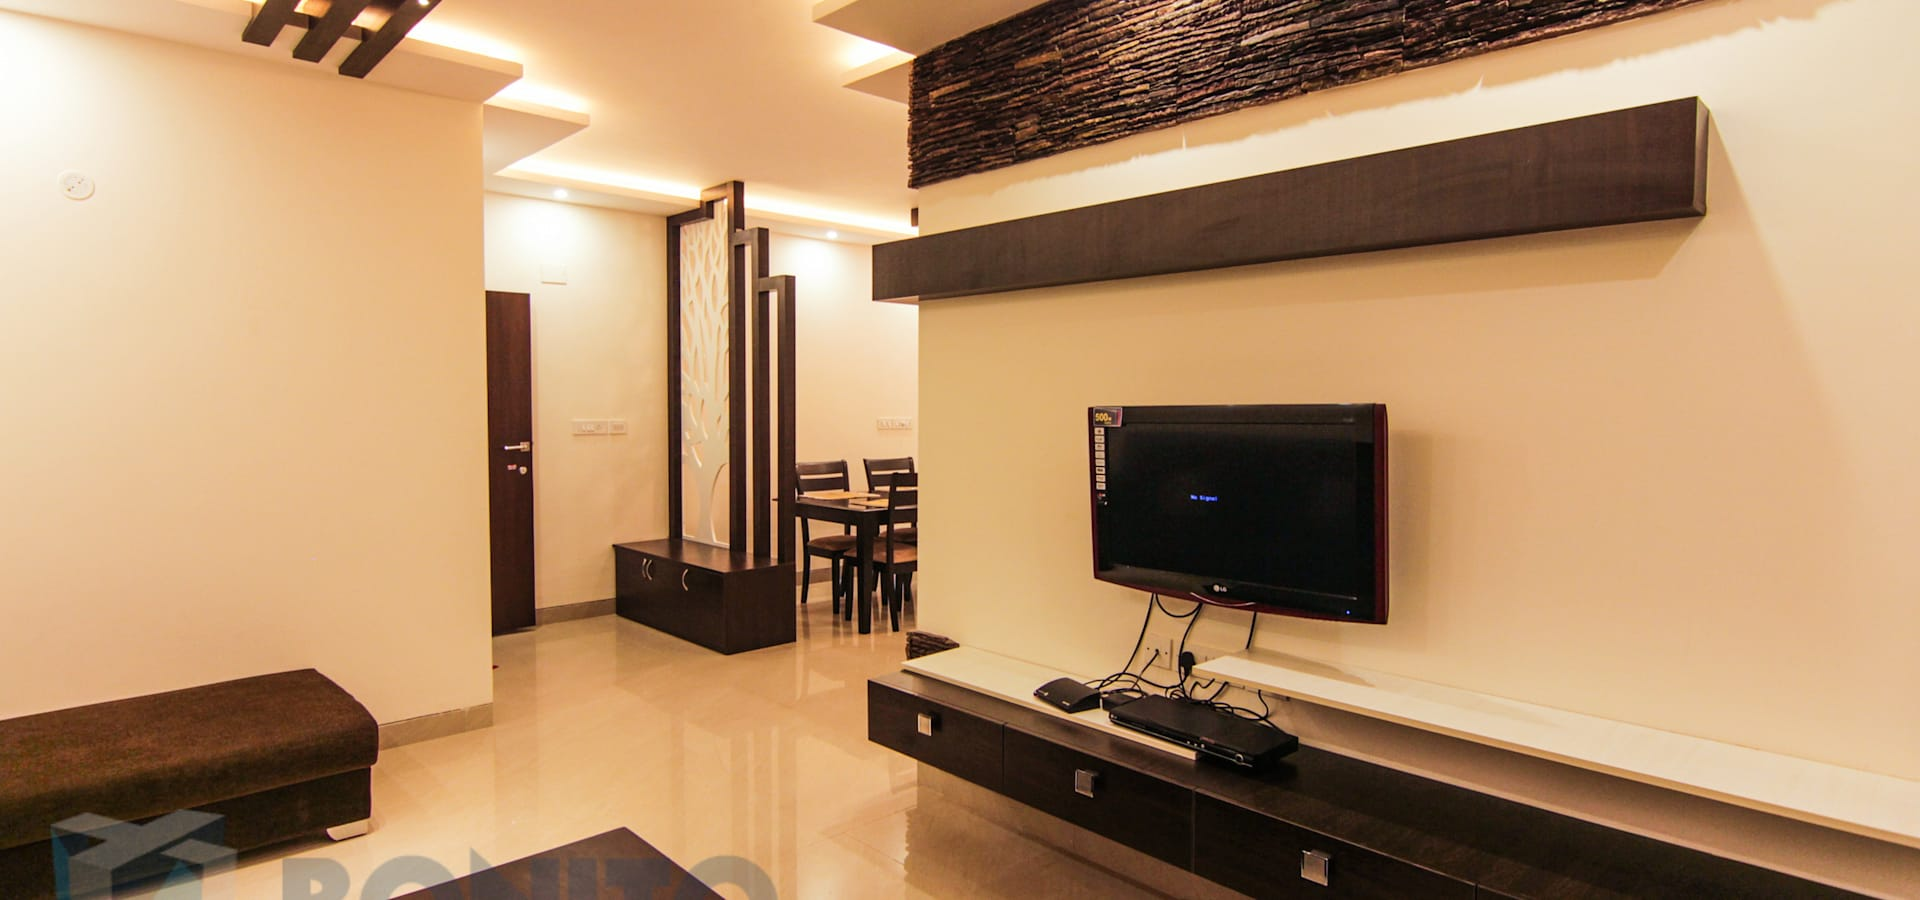 Mr Prasanth Shetty Apartment Interiors By Bonito Designs